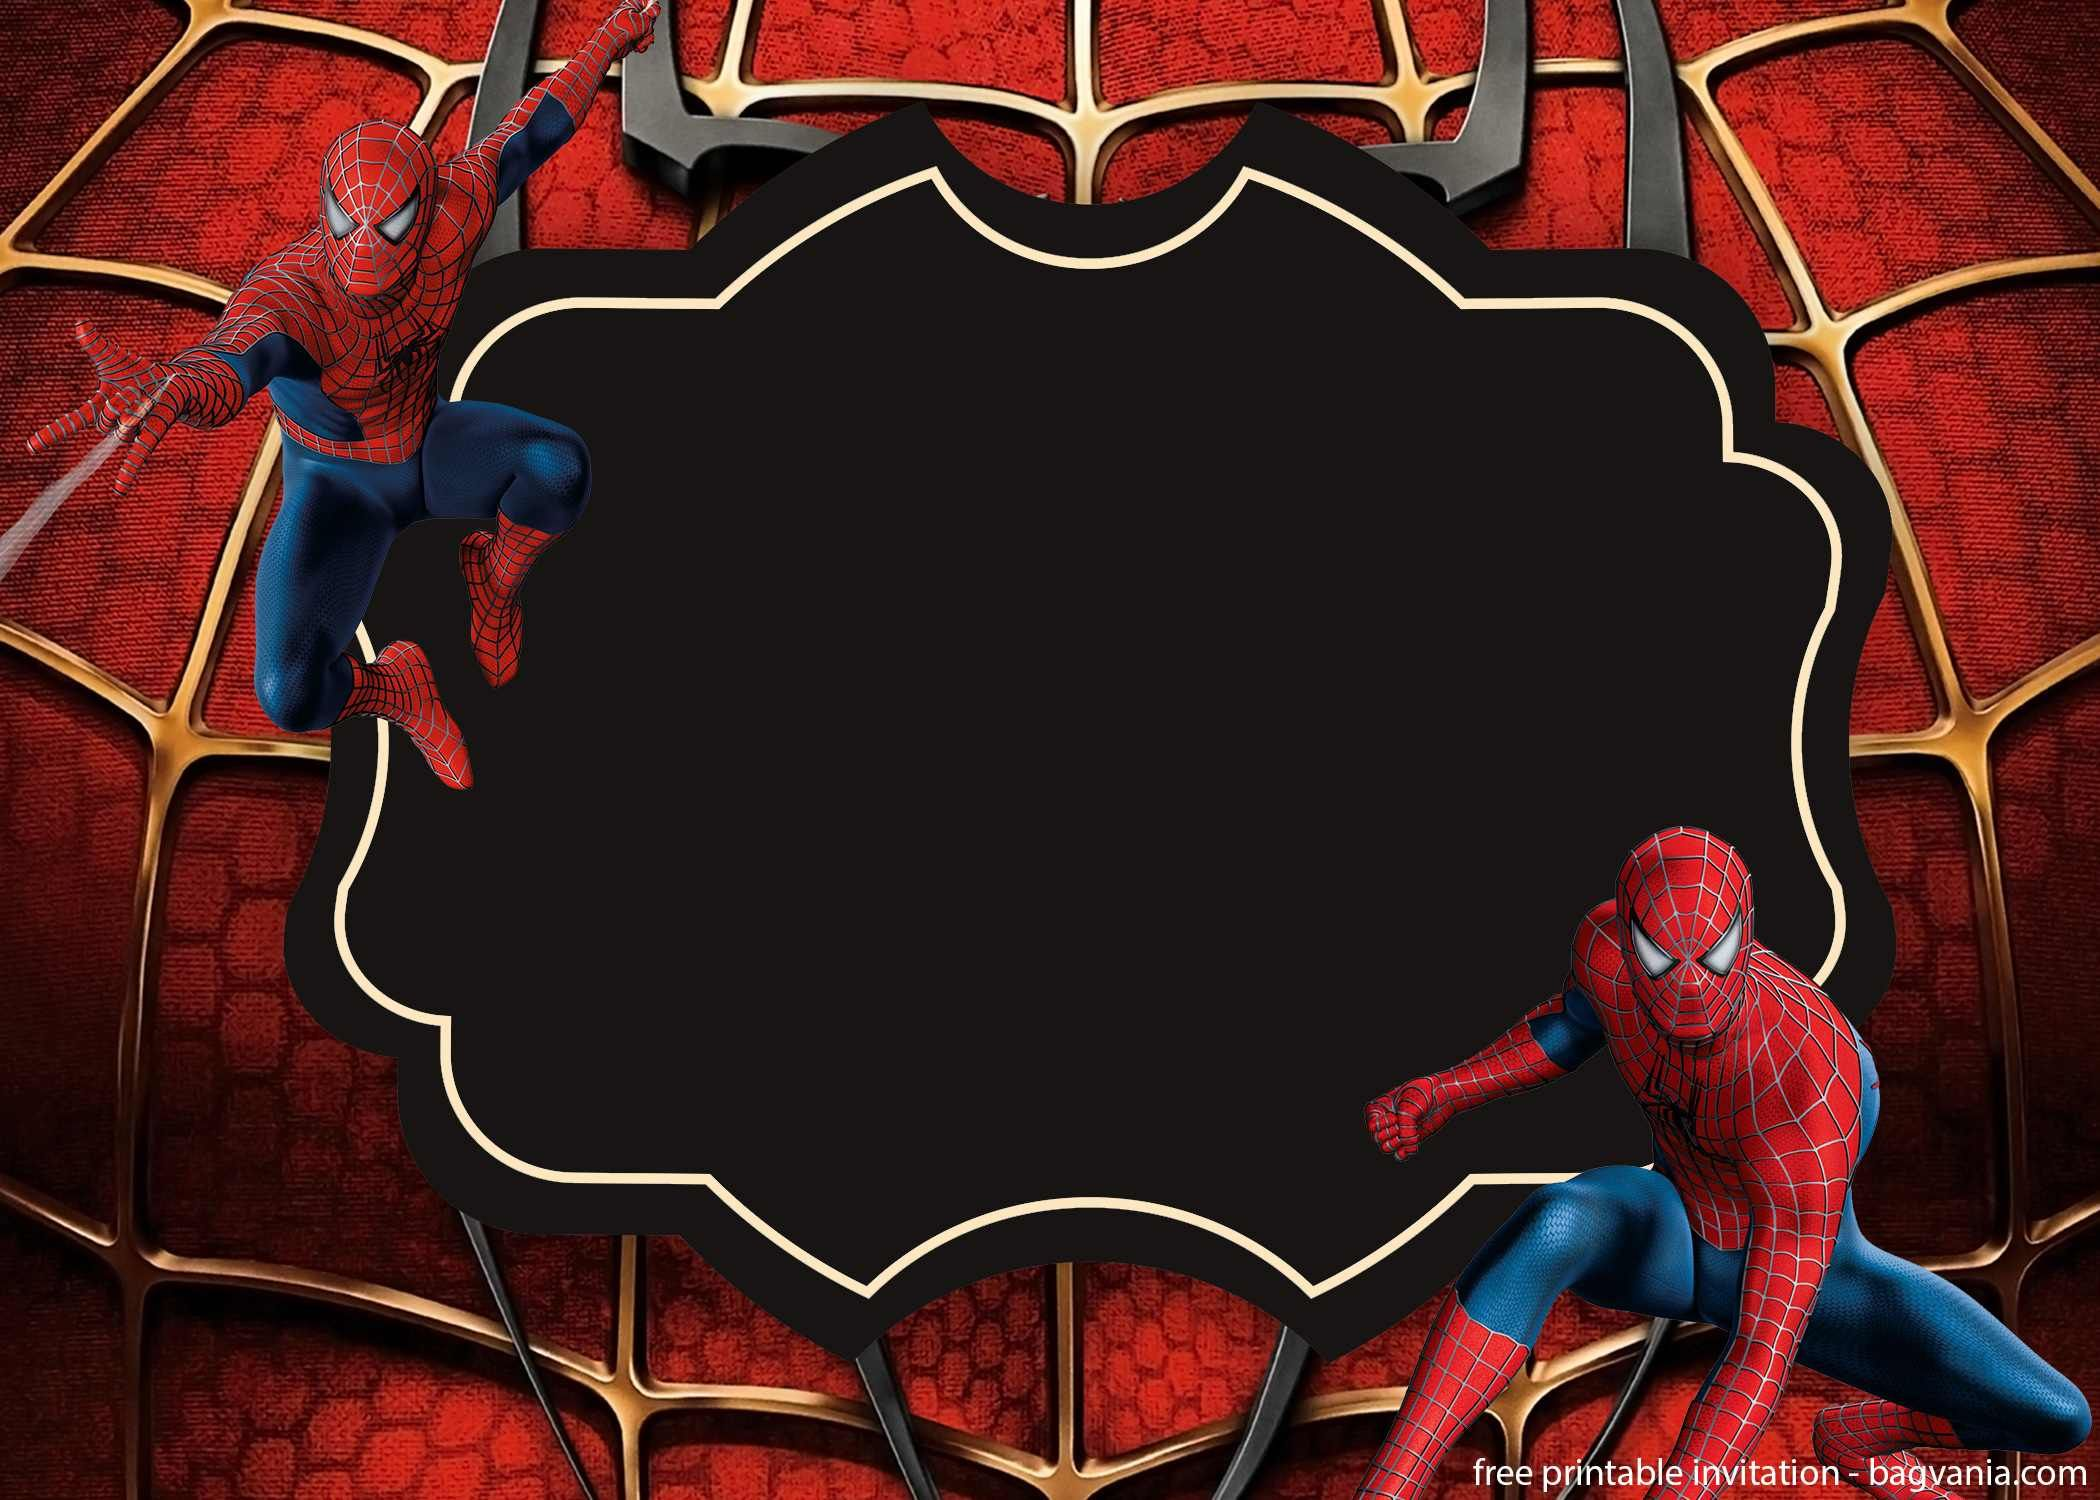 Make Your Boys Happy With Spiderman Invitations Templates